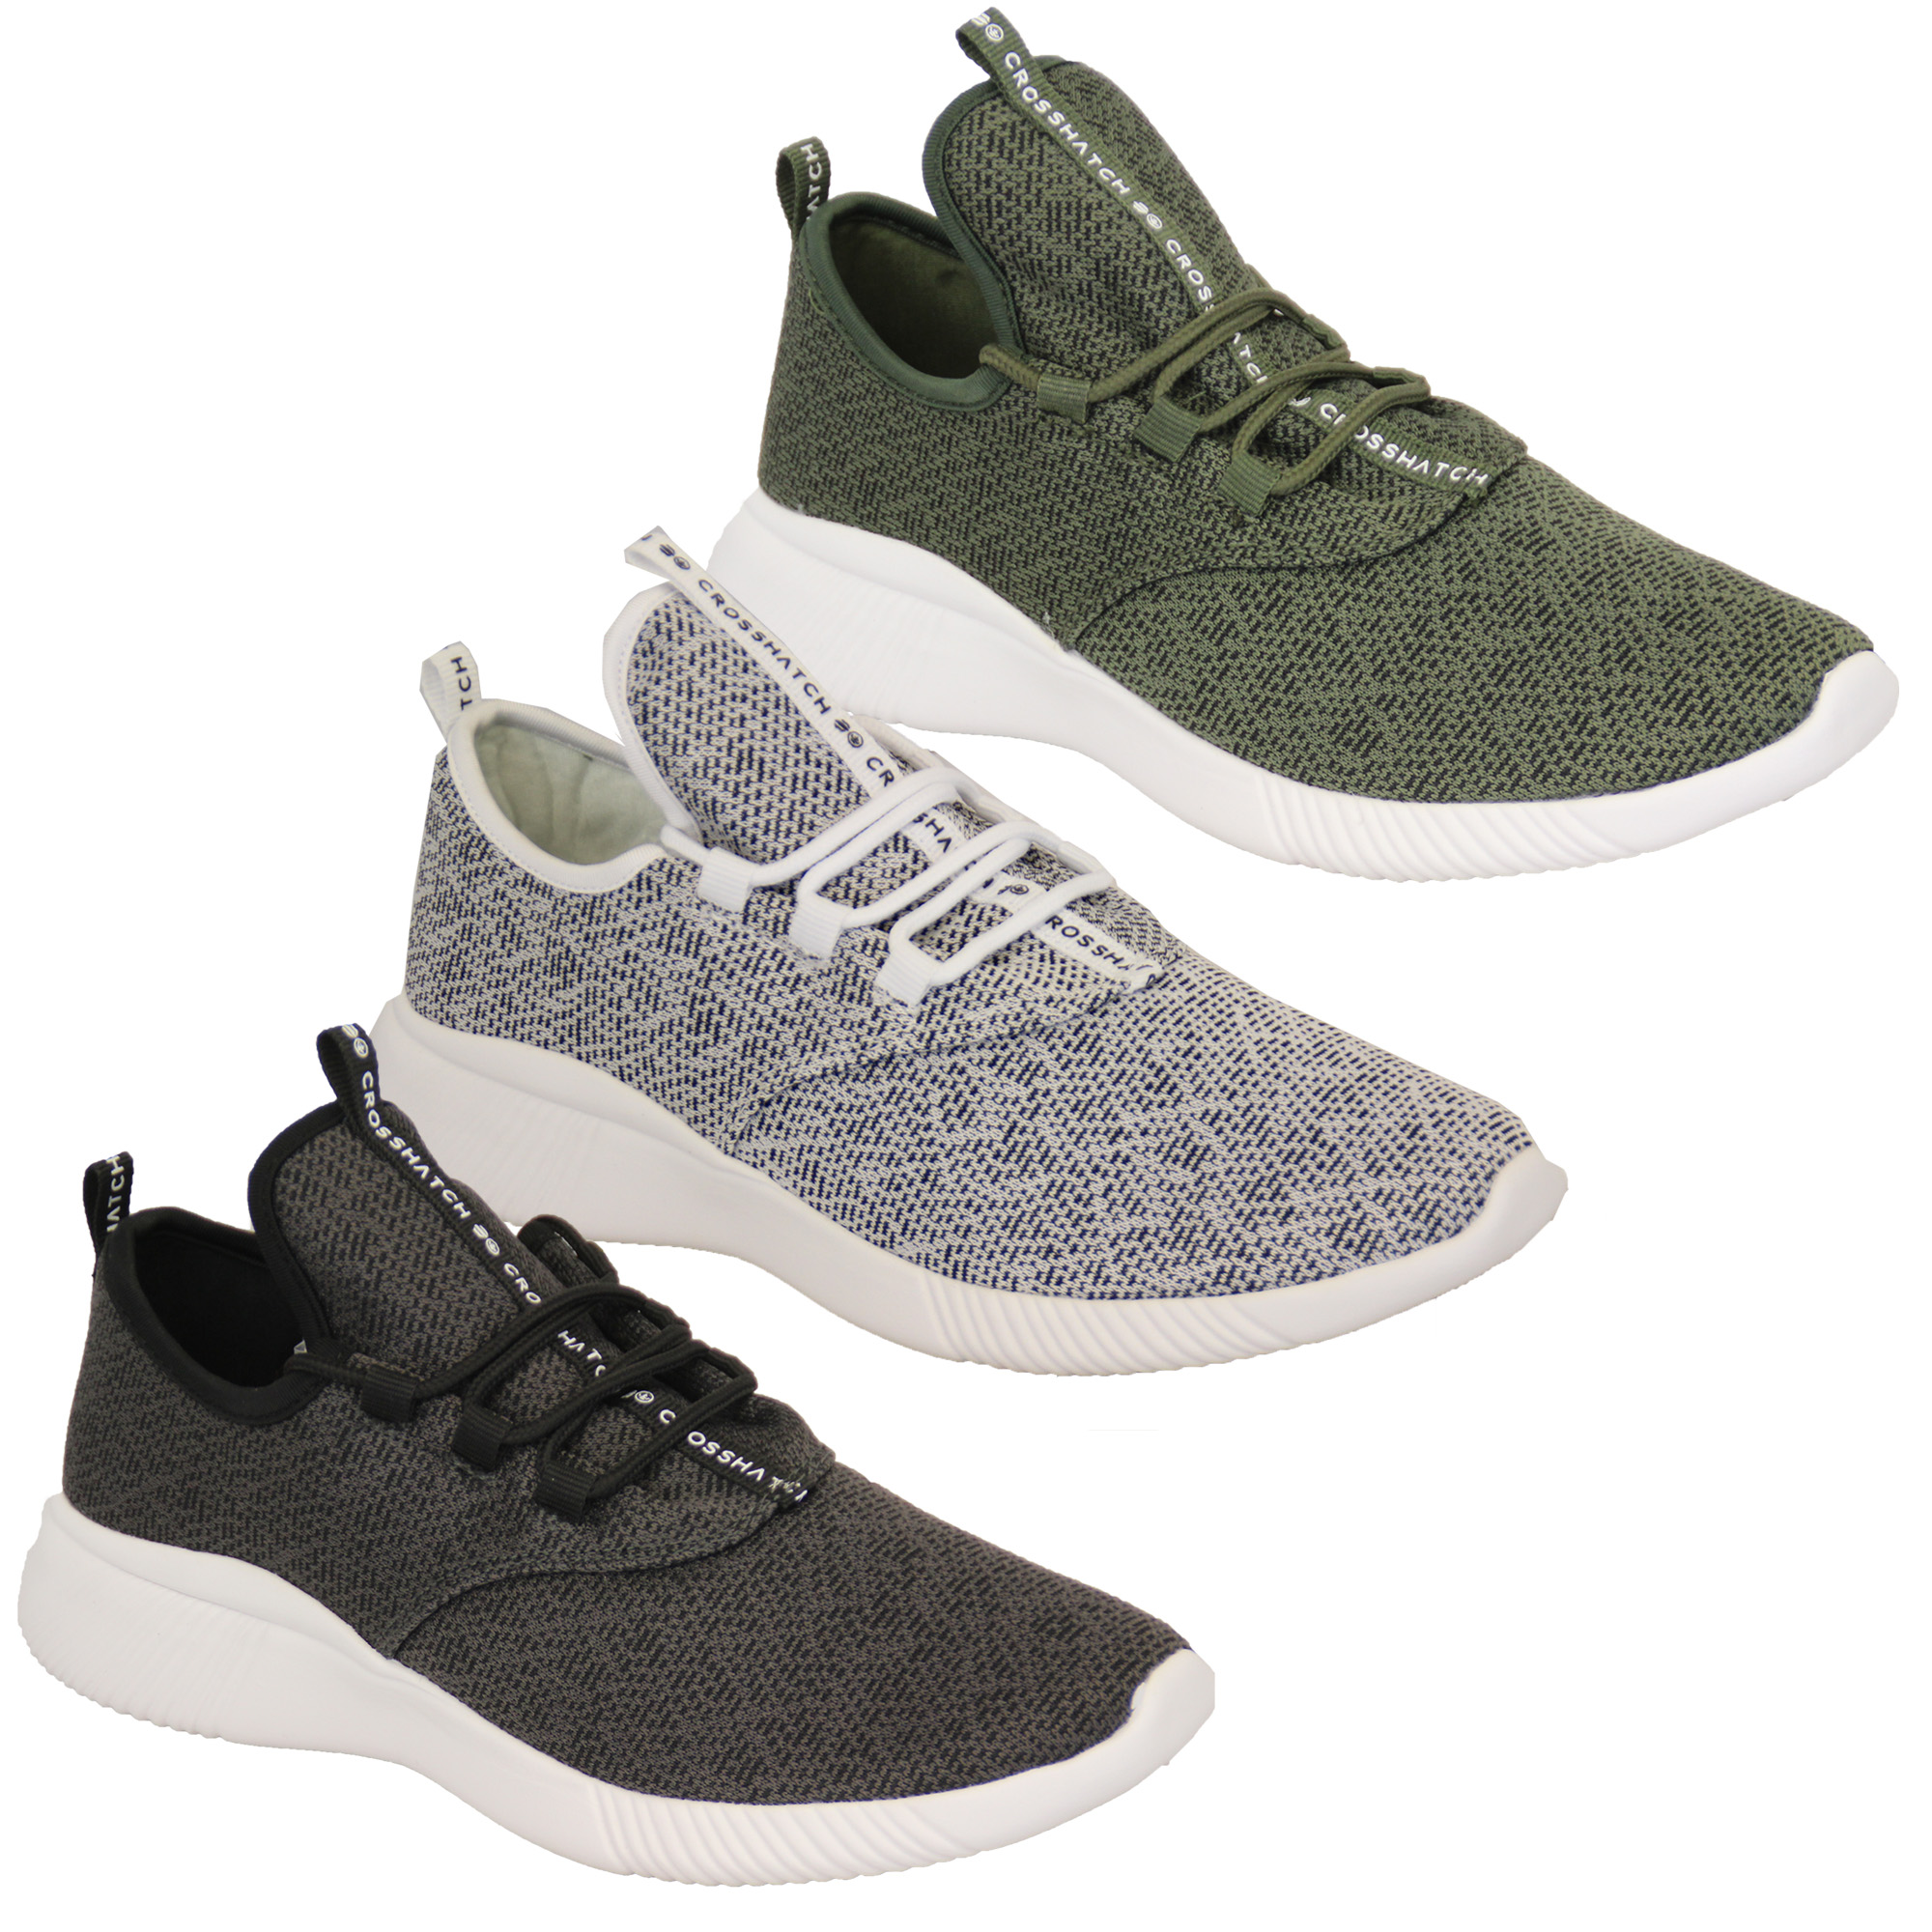 Mens-Trainers-Crosshatch-Running-Speed-Lace-Up-Knit-Mesh-Sports-Gym-Shoes-Casual thumbnail 4